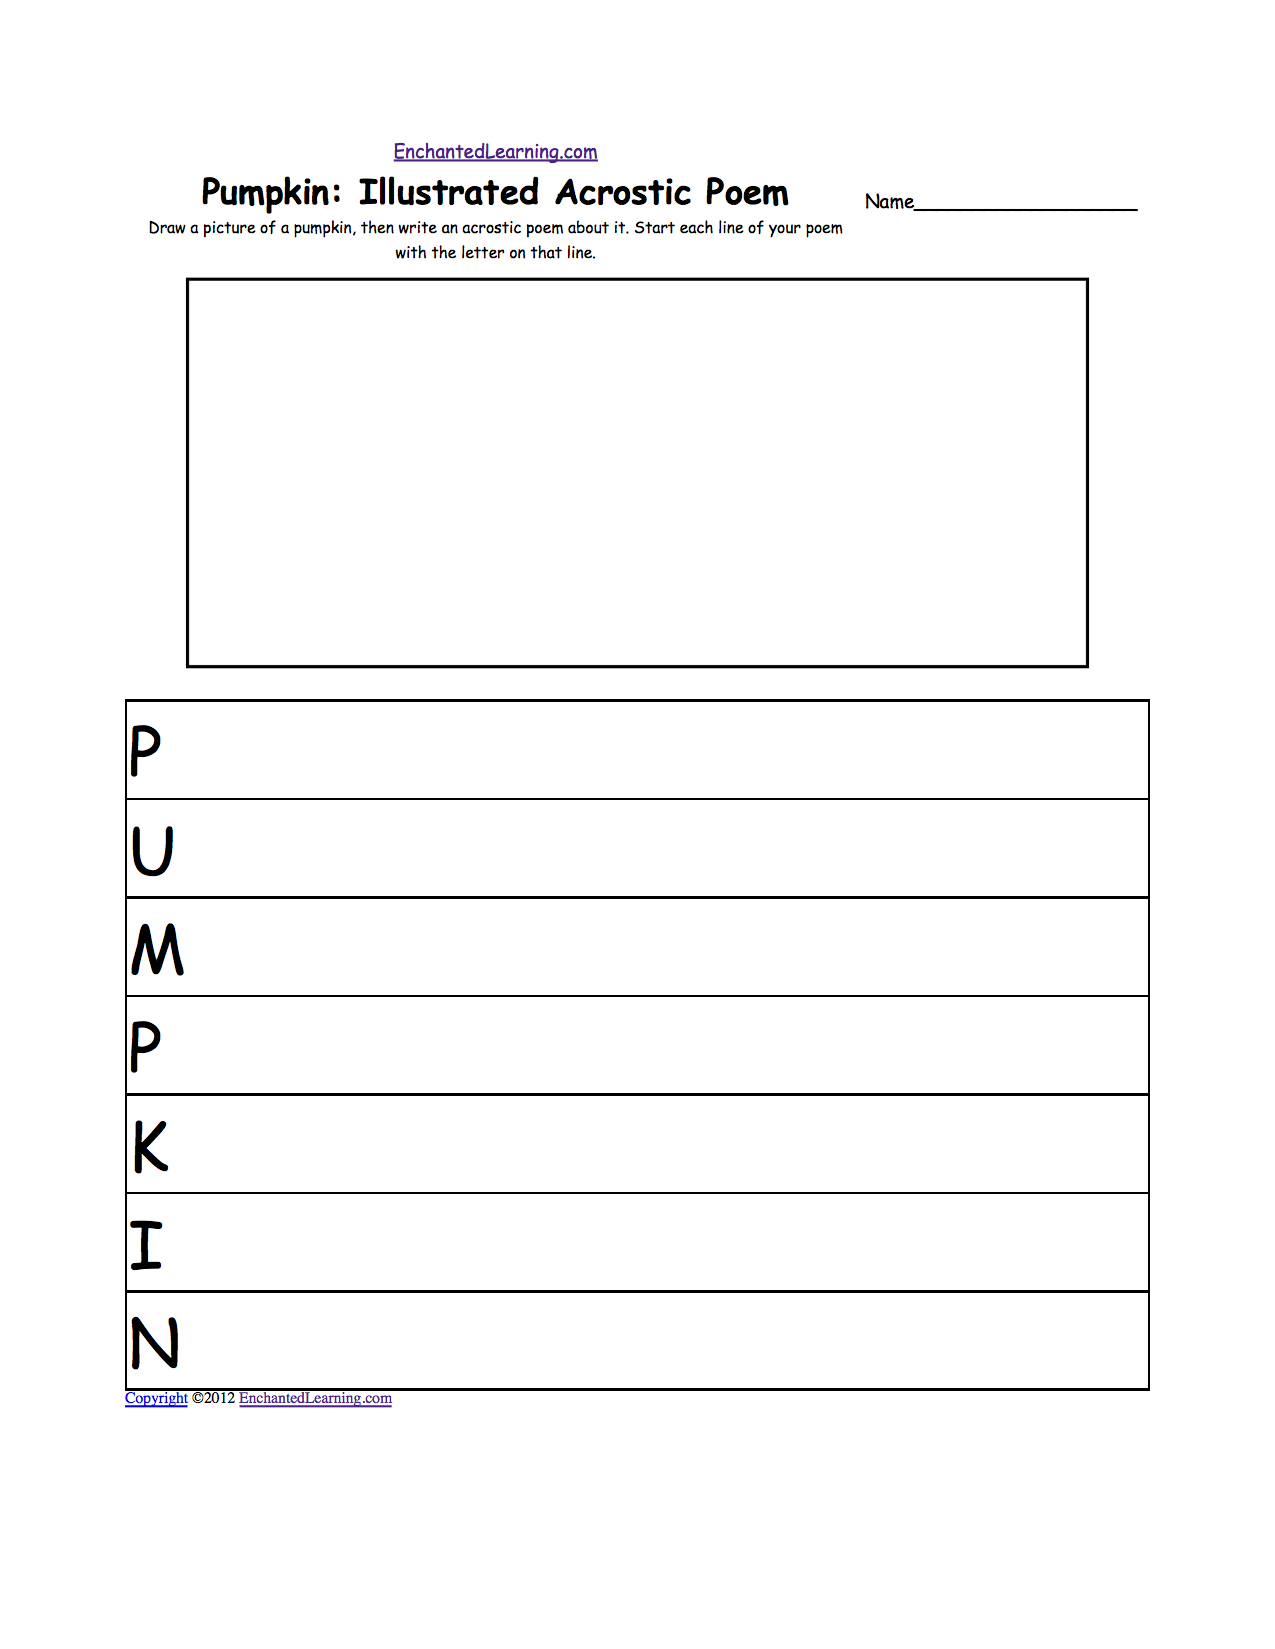 Pumpkins at EnchantedLearning – Life Cycle of a Pumpkin Worksheet